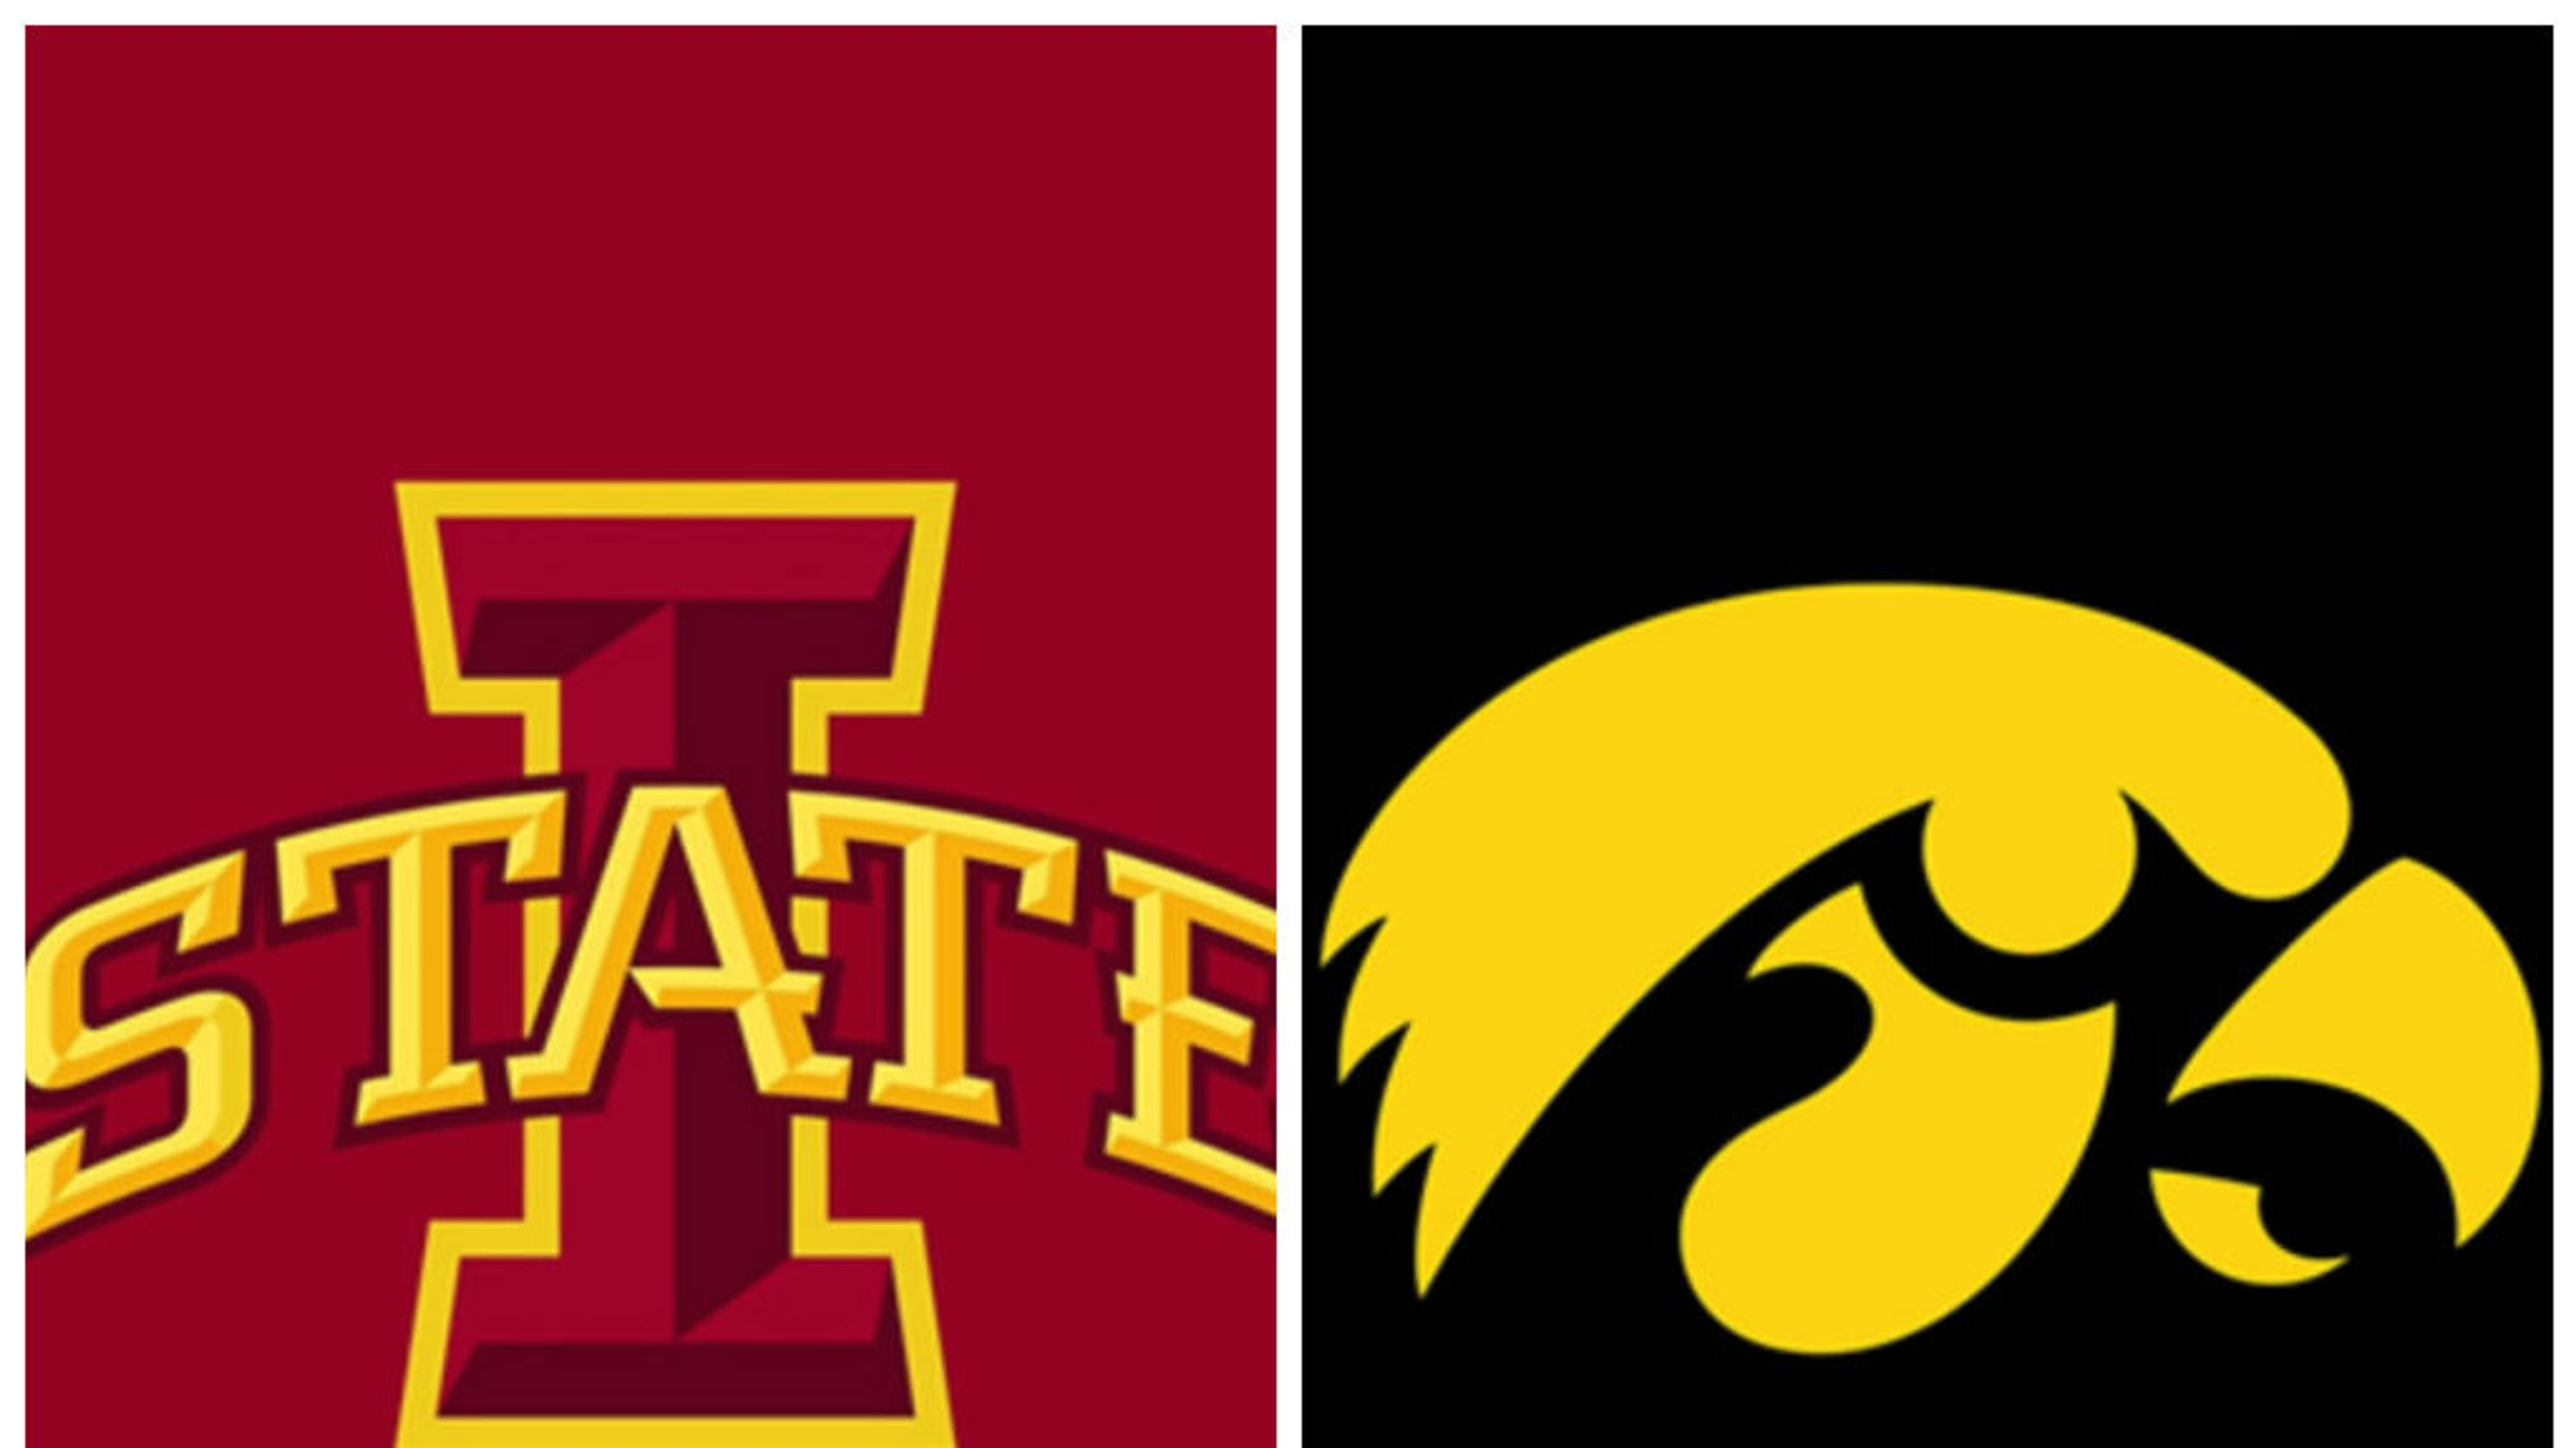 Stats File Details On Projected Cy Hawk Football Starters For Iowa State And